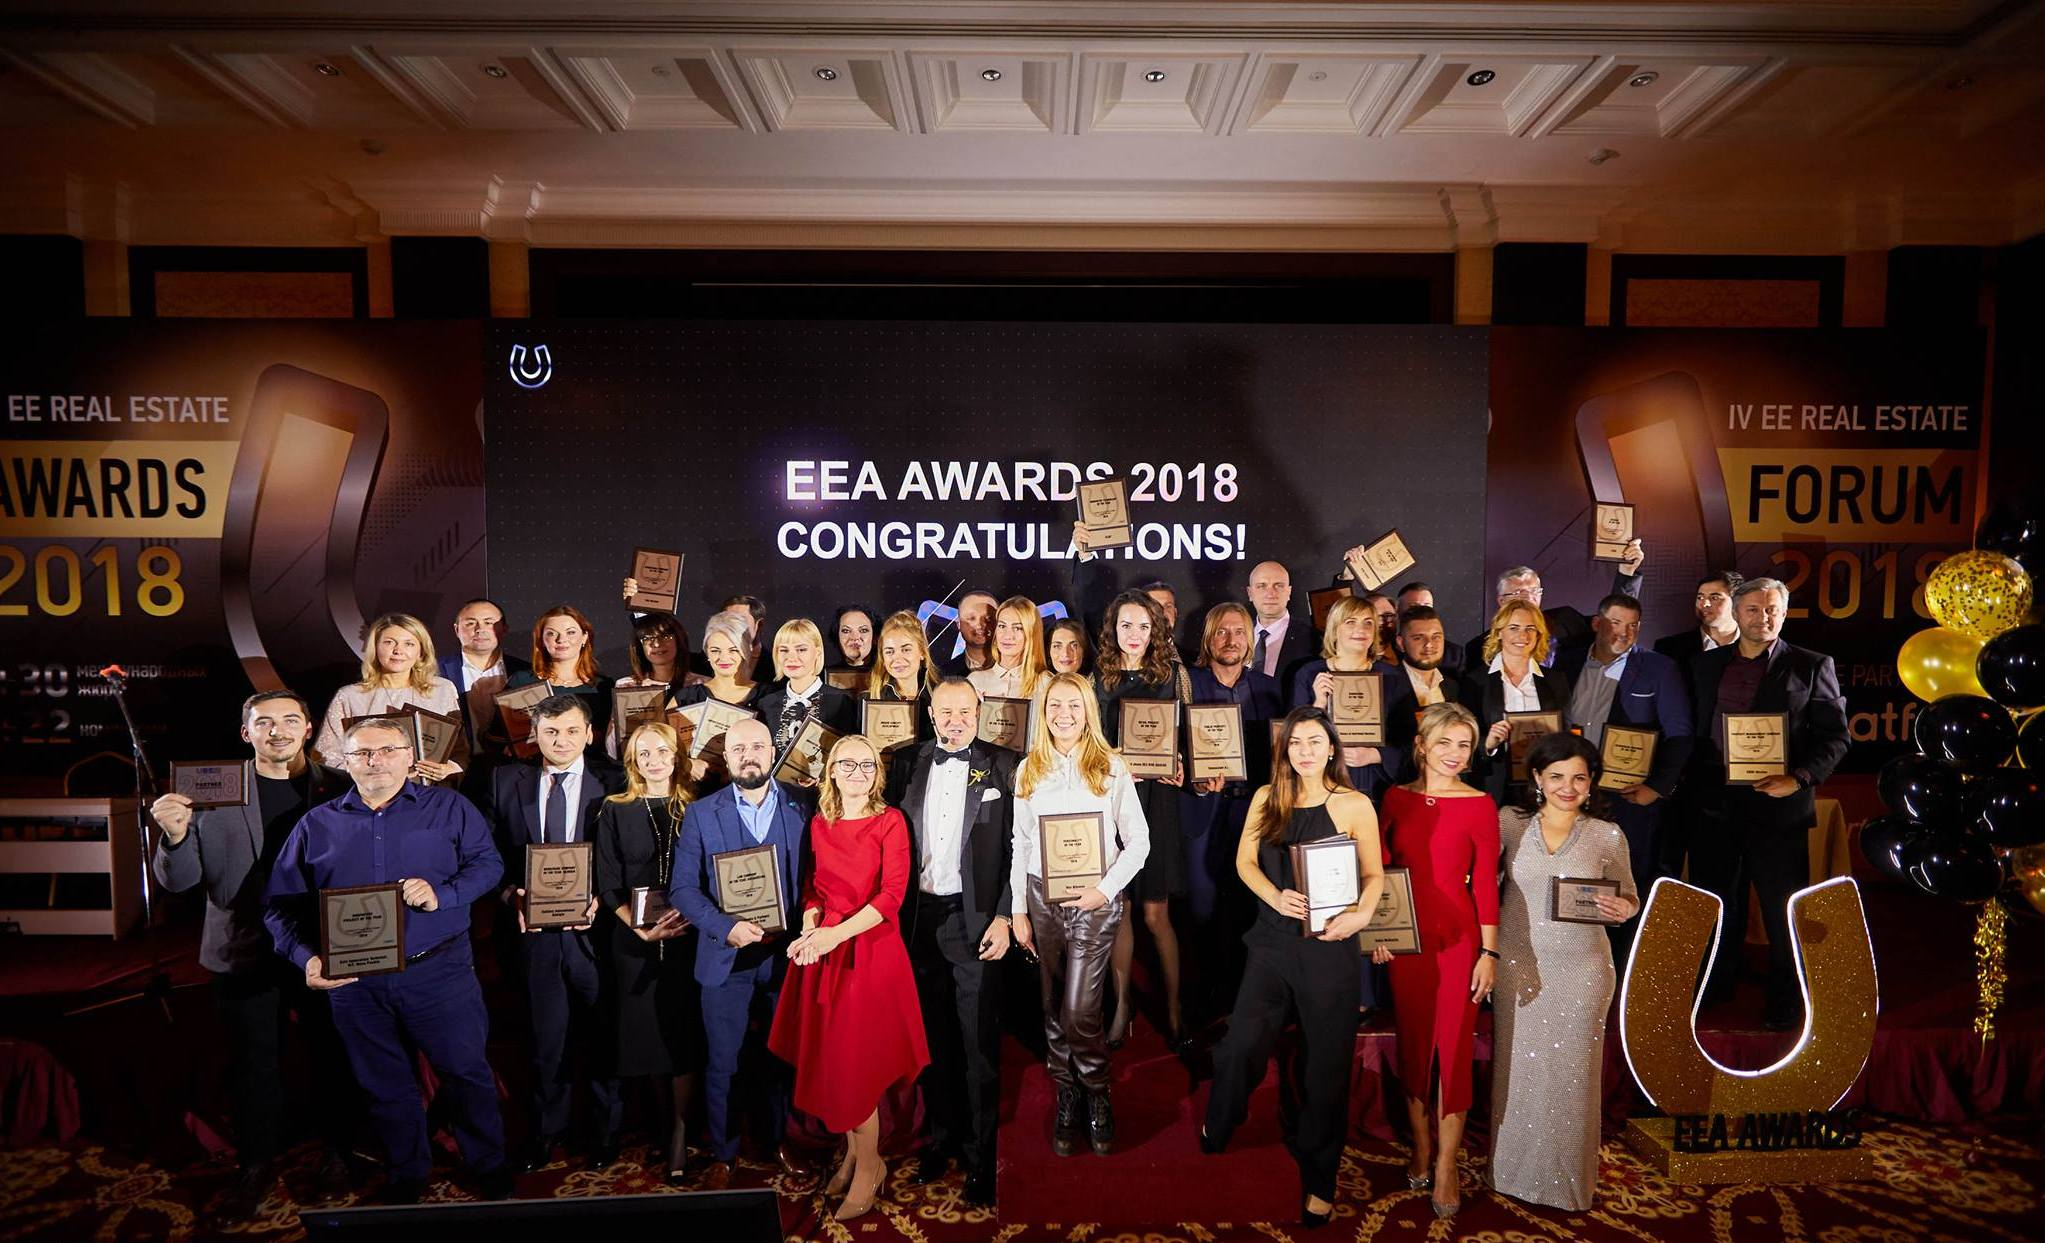 EEA Awards 2018